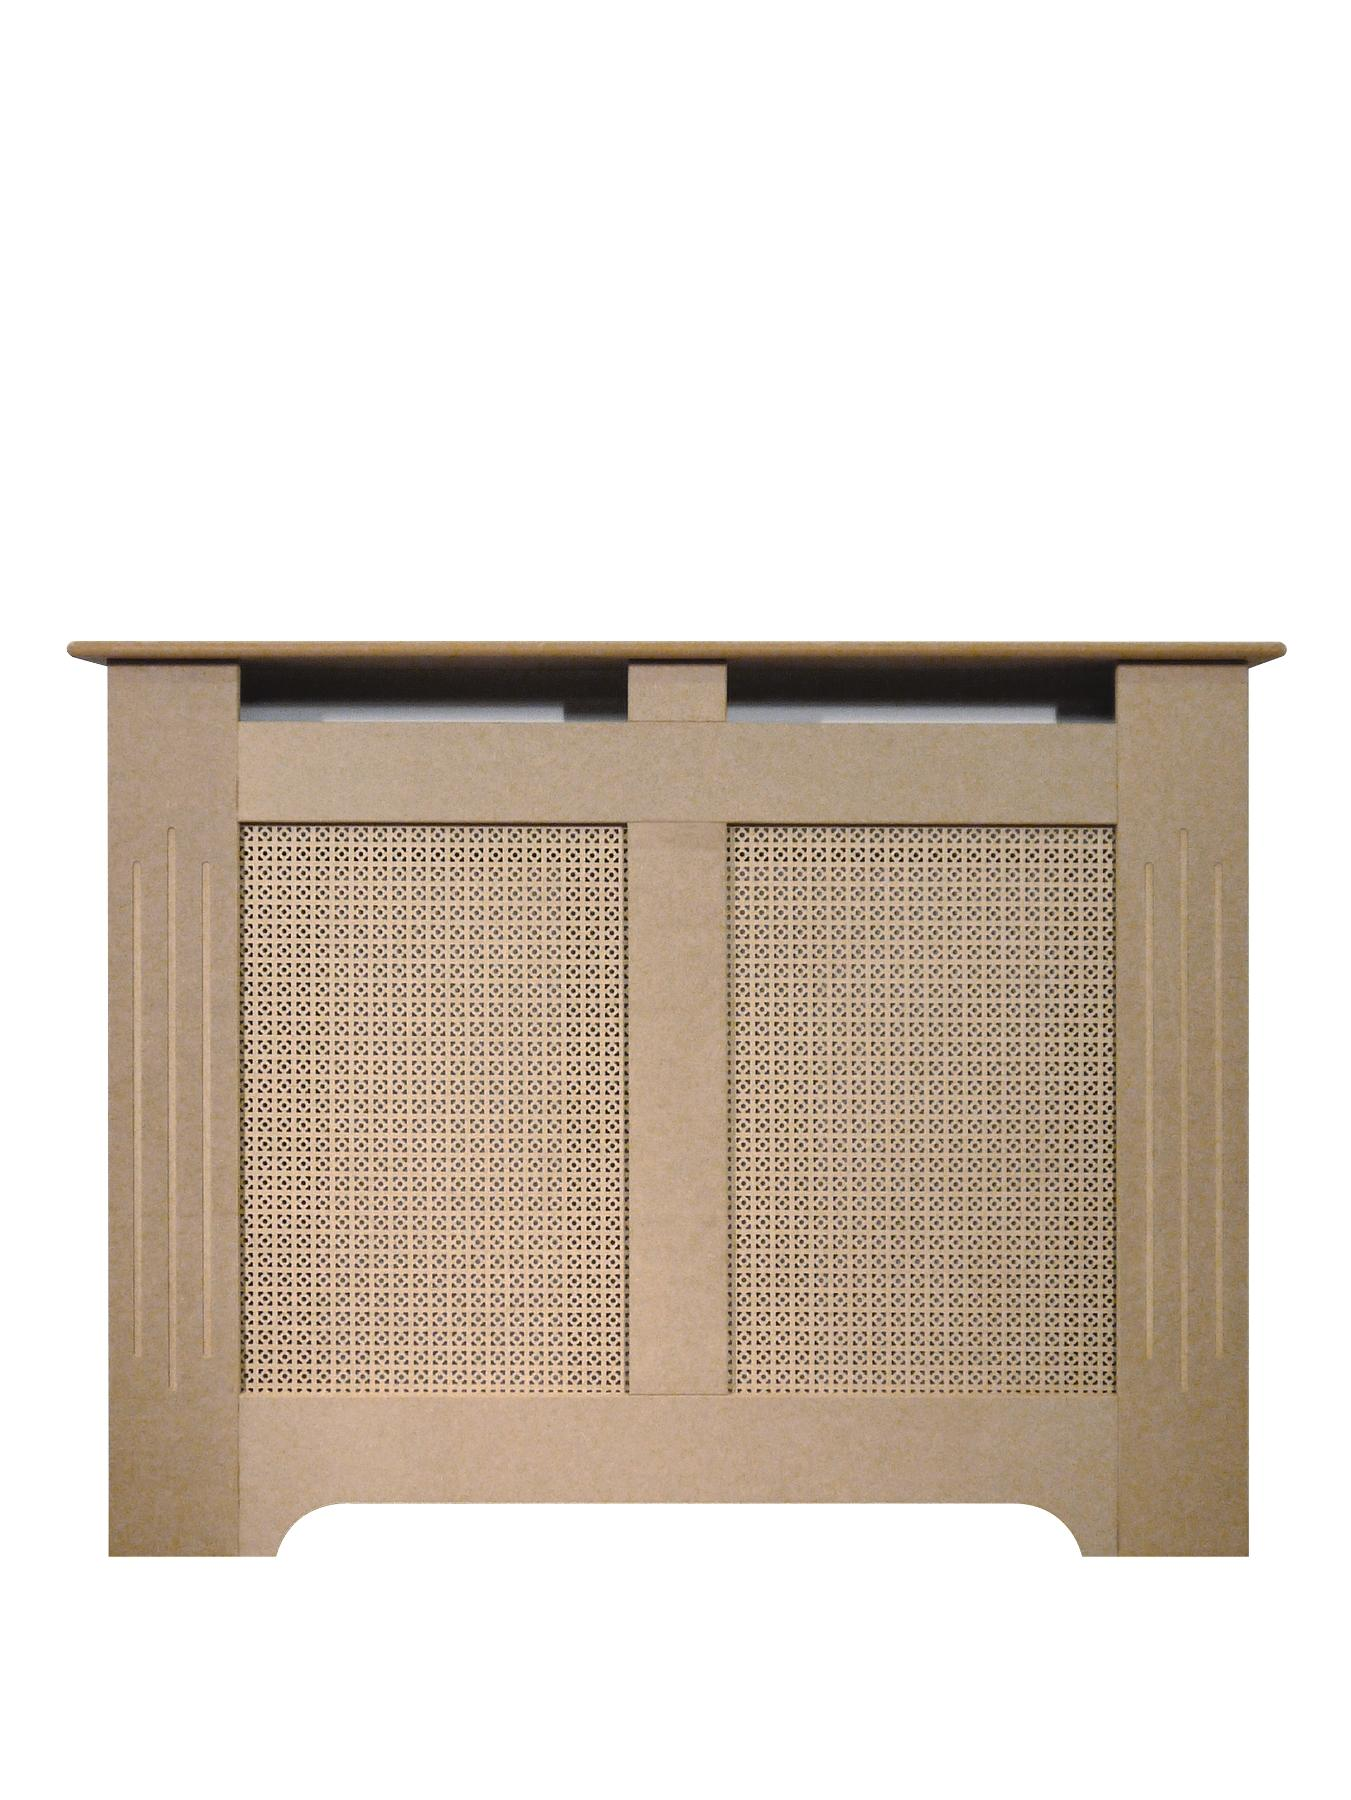 120cm Unfinished MDF Radiator Cover.